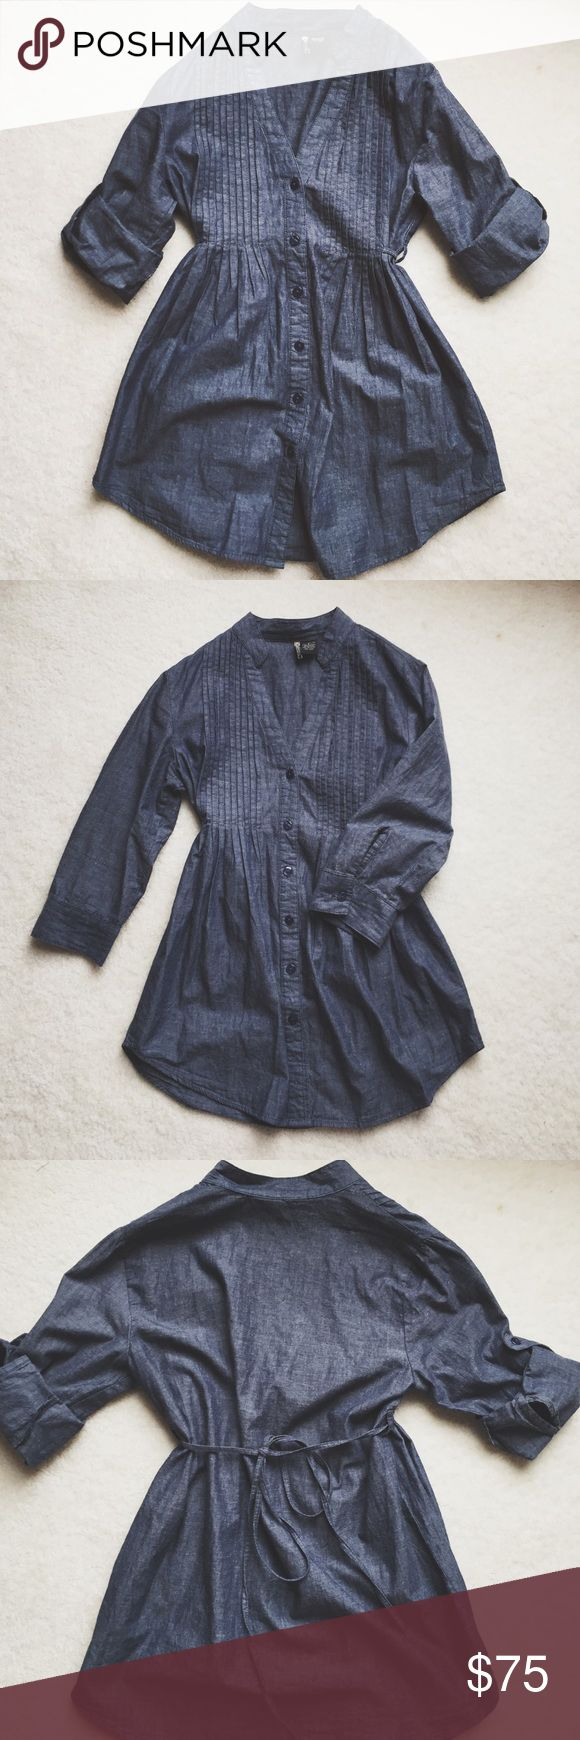 Vintage soft denim babydoll blouse ⋈ Soft babydoll button down top ⋈ Sleeves can be worn rolled up or down as shown ⋈ Brand is Passport ⋈ Price is negotiable! Vintage Tops Button Down Shirts